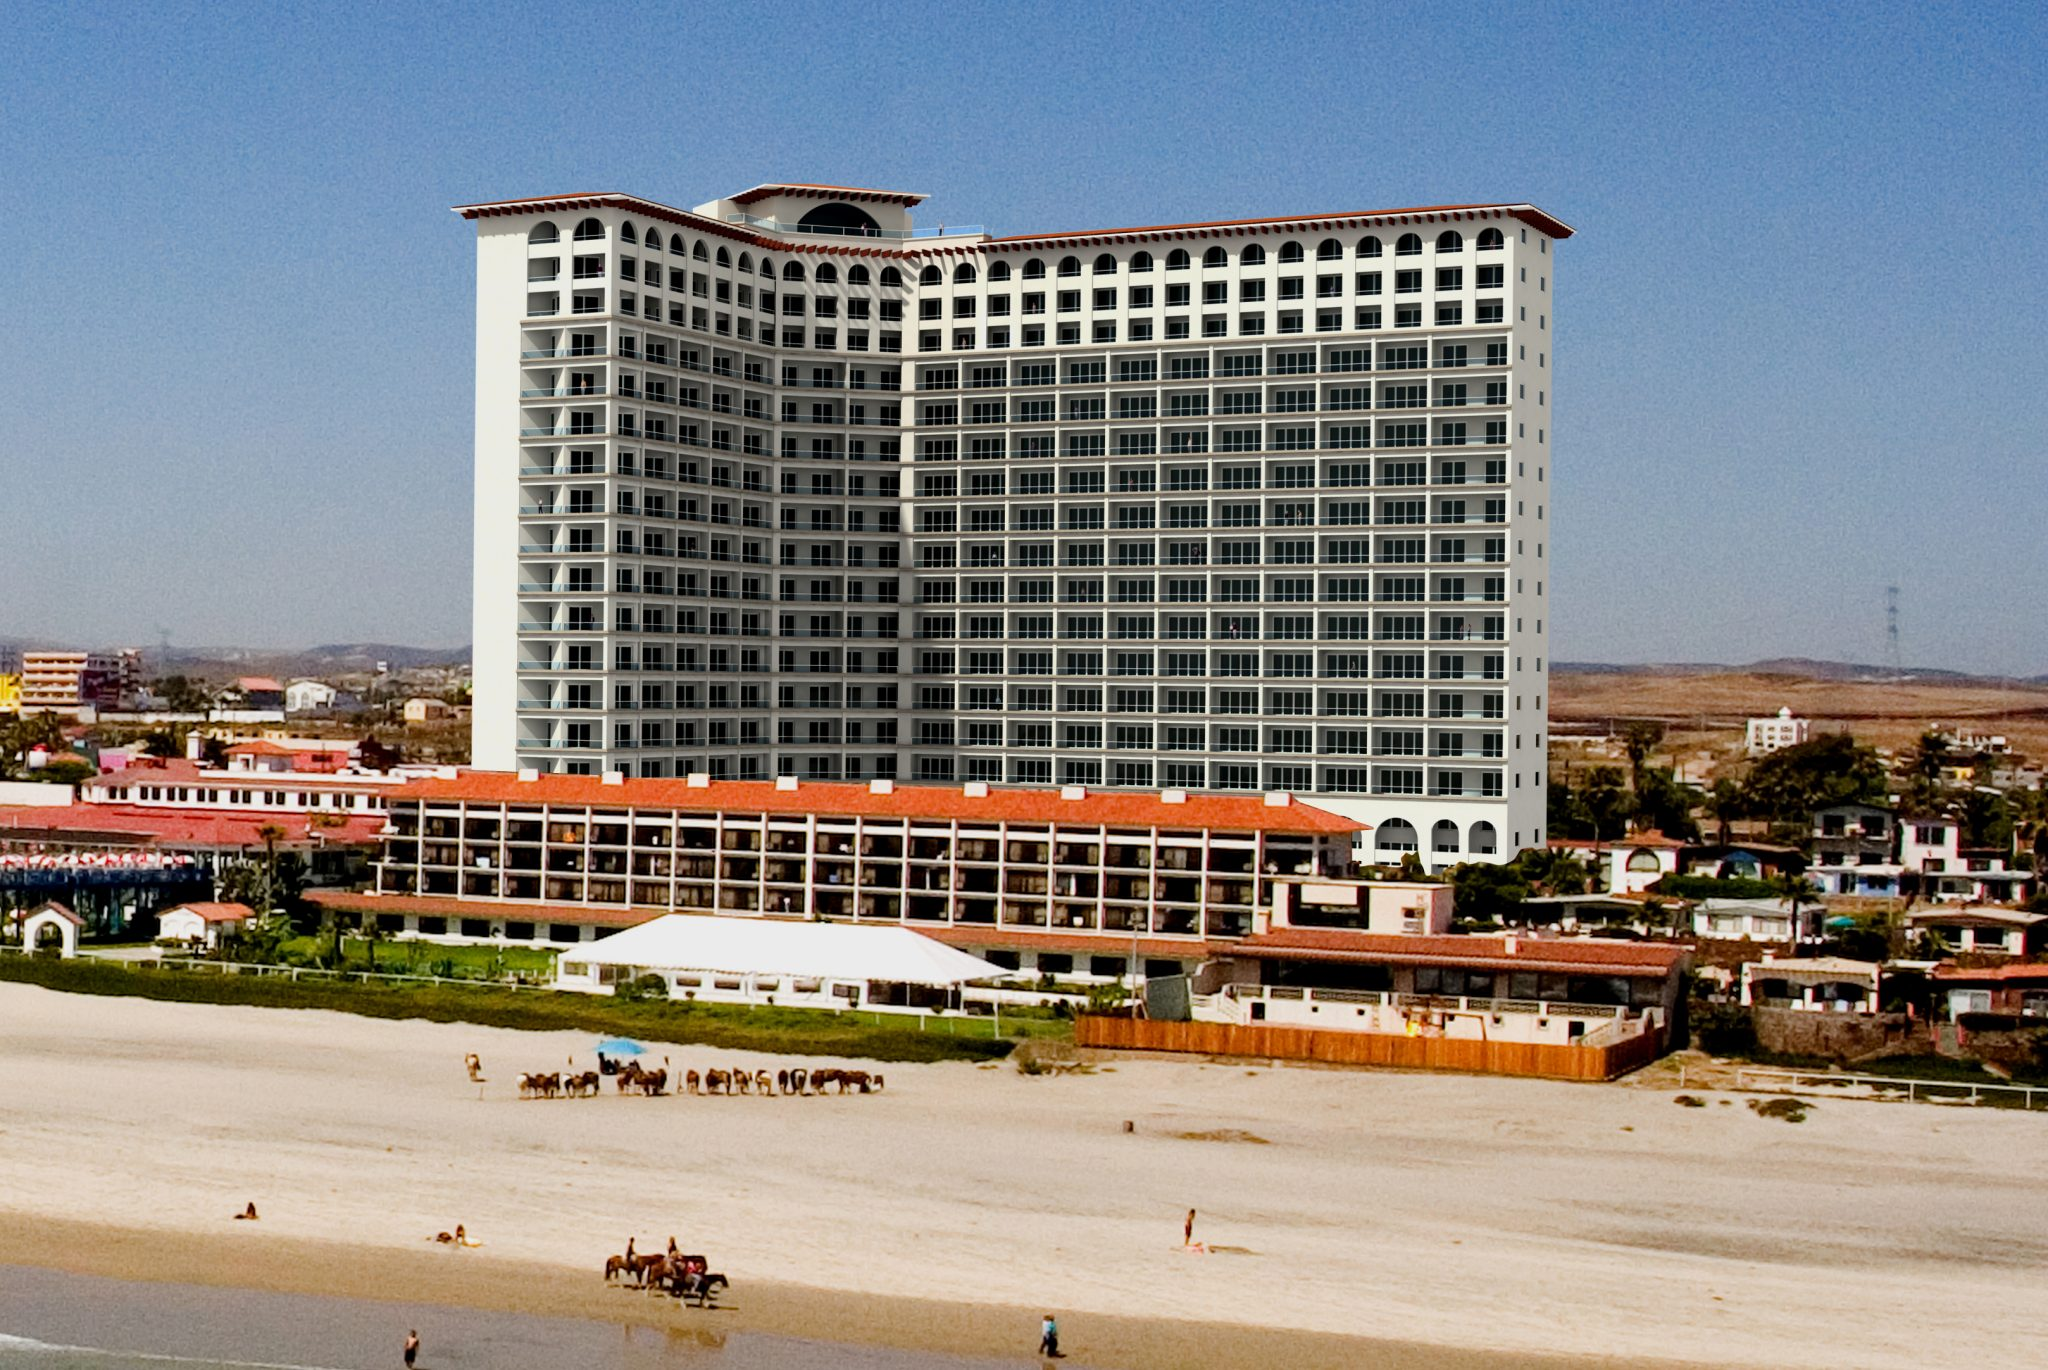 Panoramic view of Rosarito Beach Hotel tower